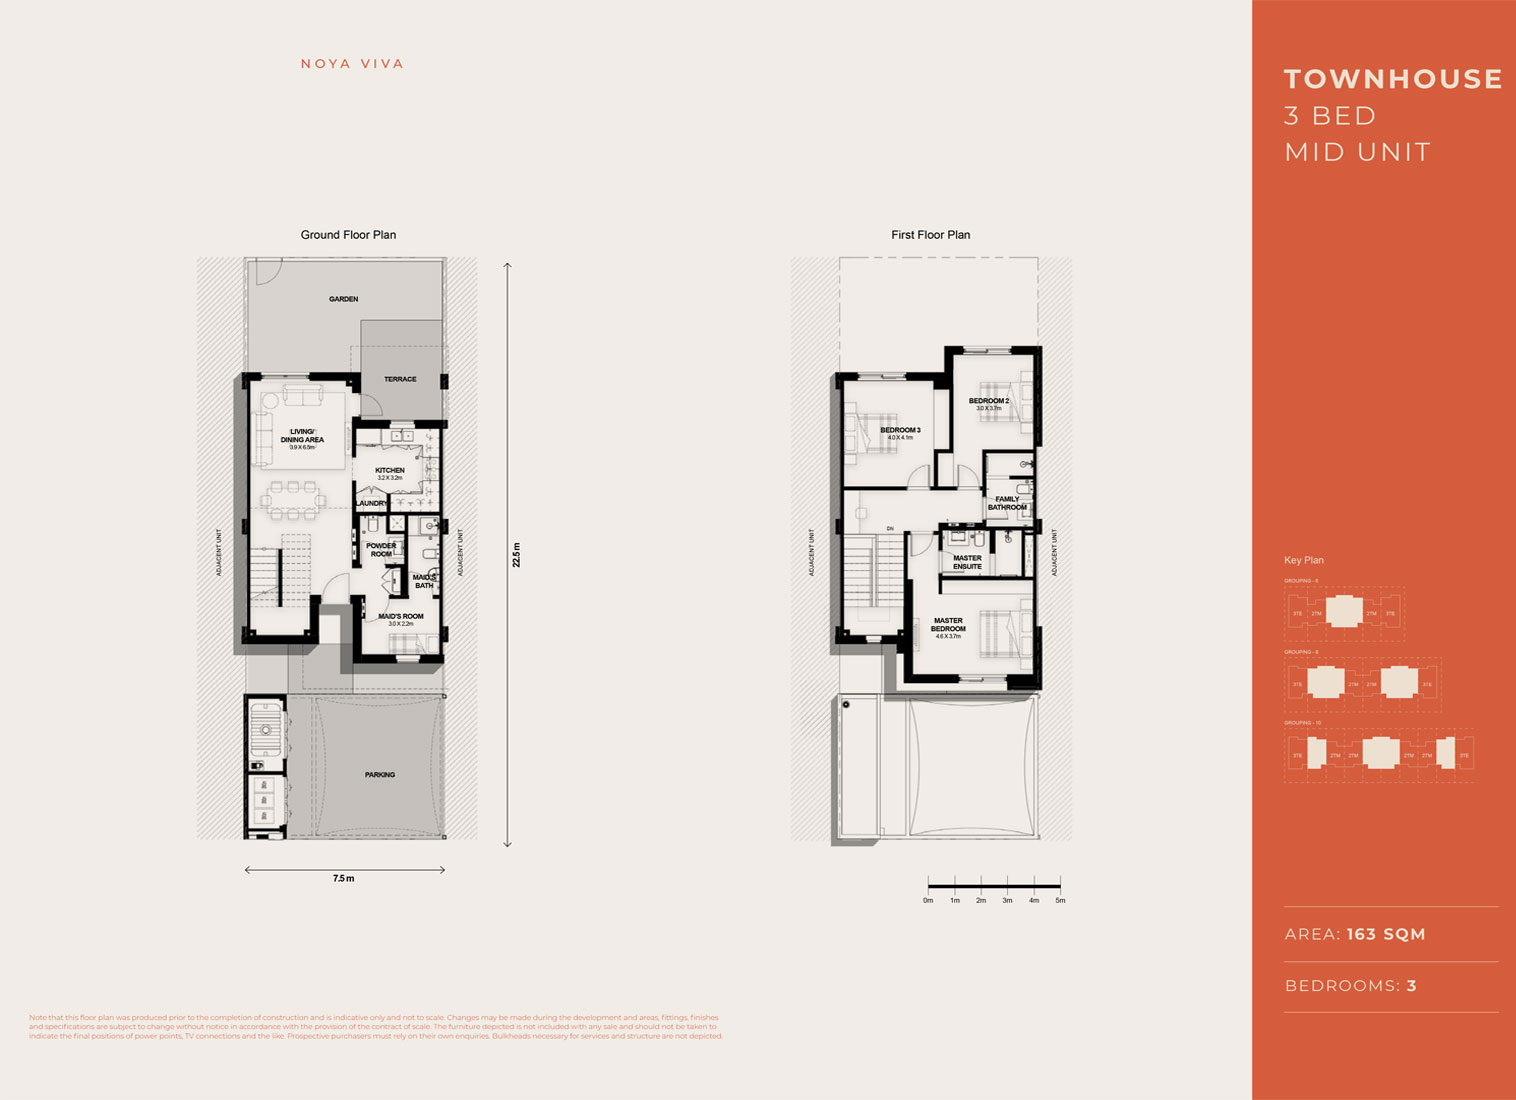 3 Bed TH, Mid Unit